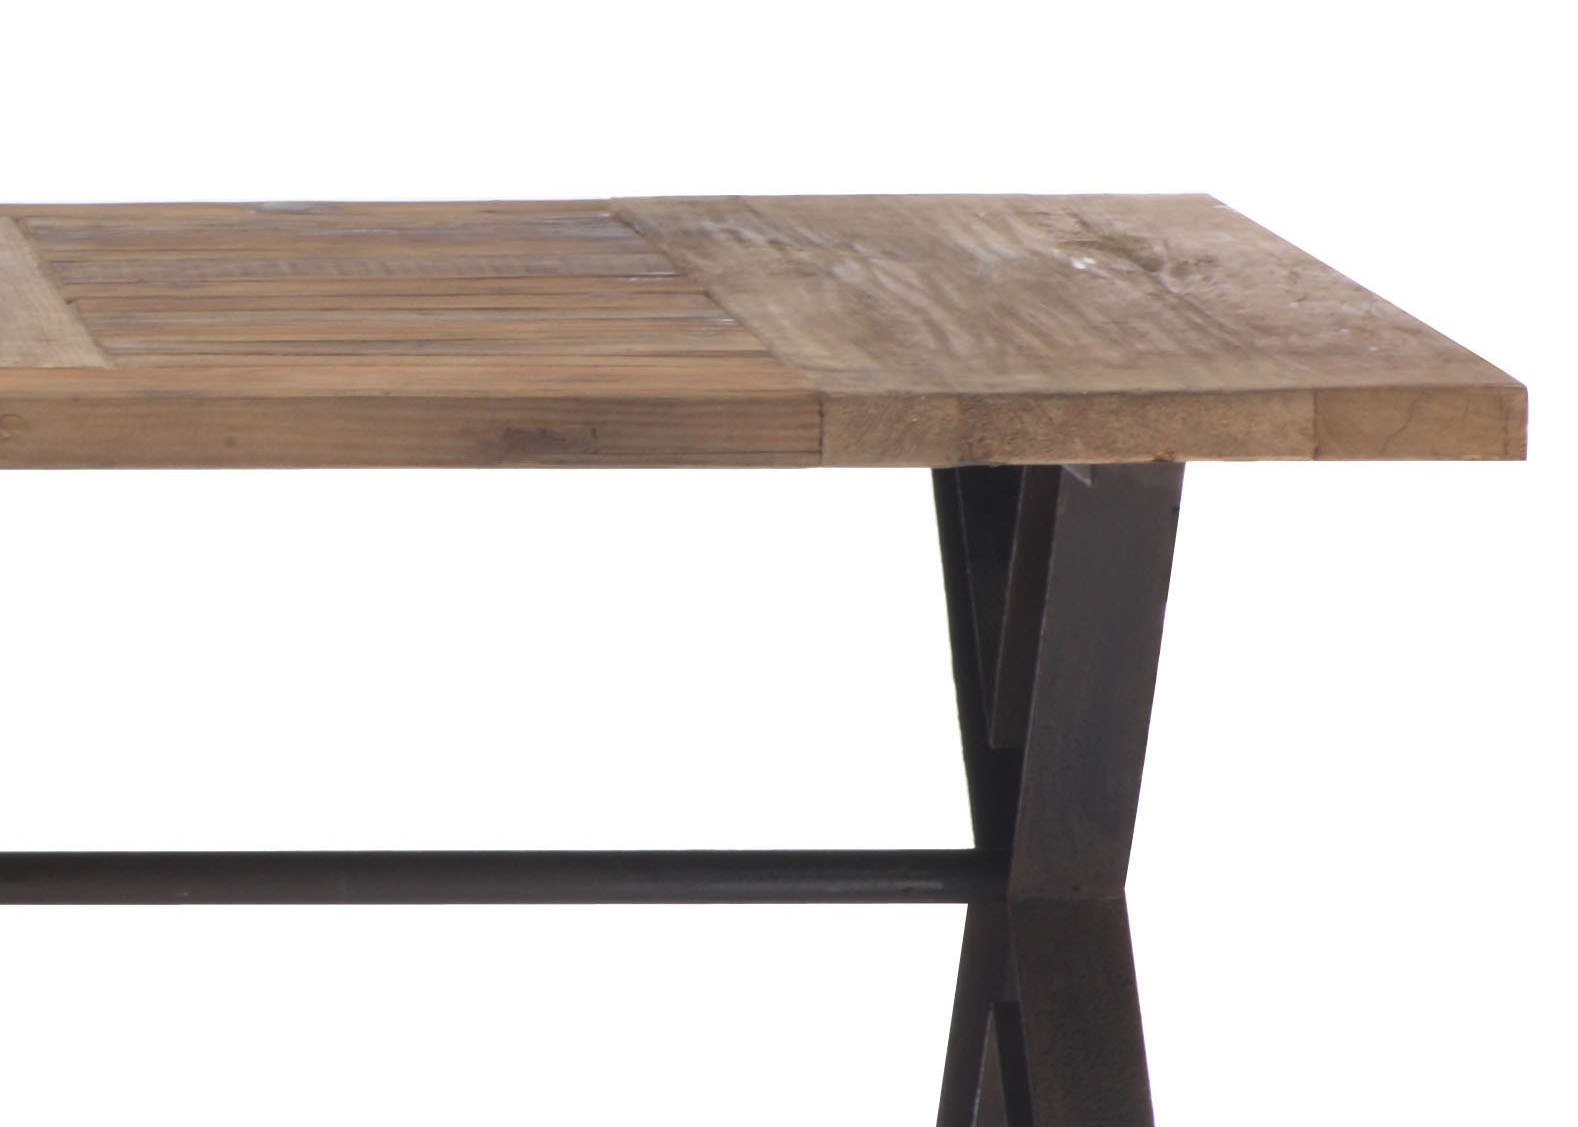 Contemporary Trestle Legs Dining Table With Intricate Top